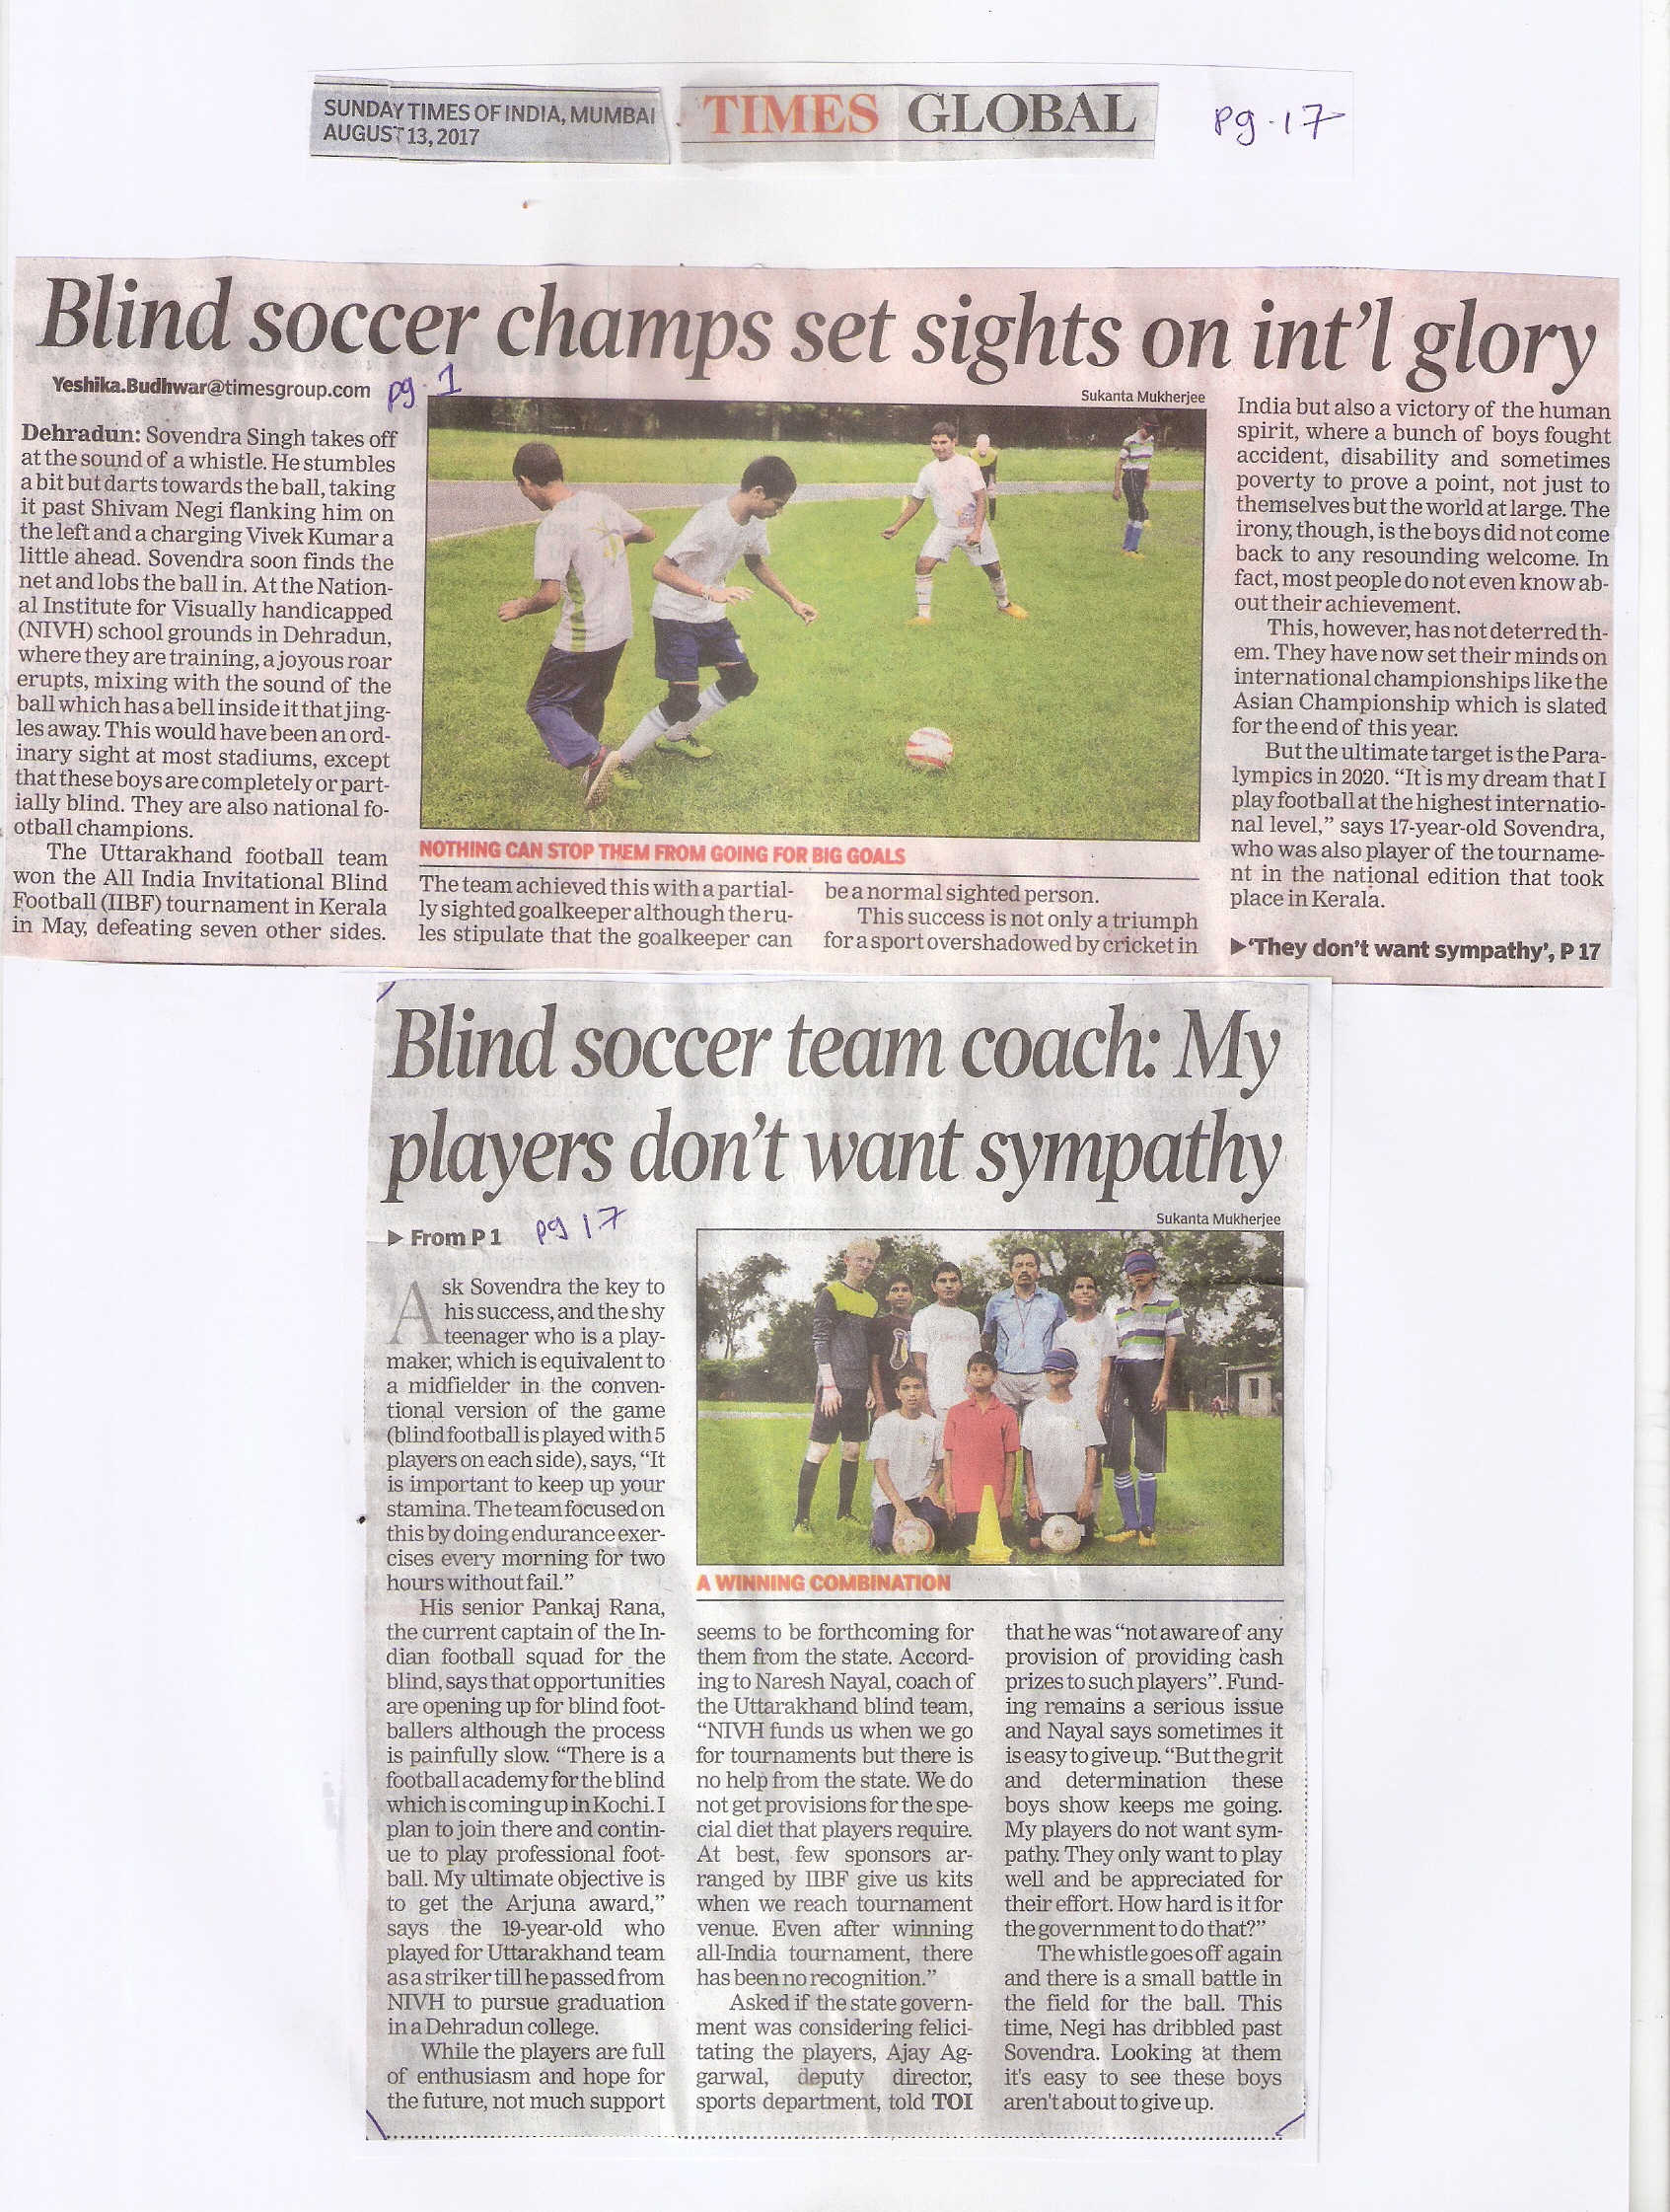 blind-soccer-team-coach-my-players-dont-want-sympathy-toi-sun-1317pg-1-17